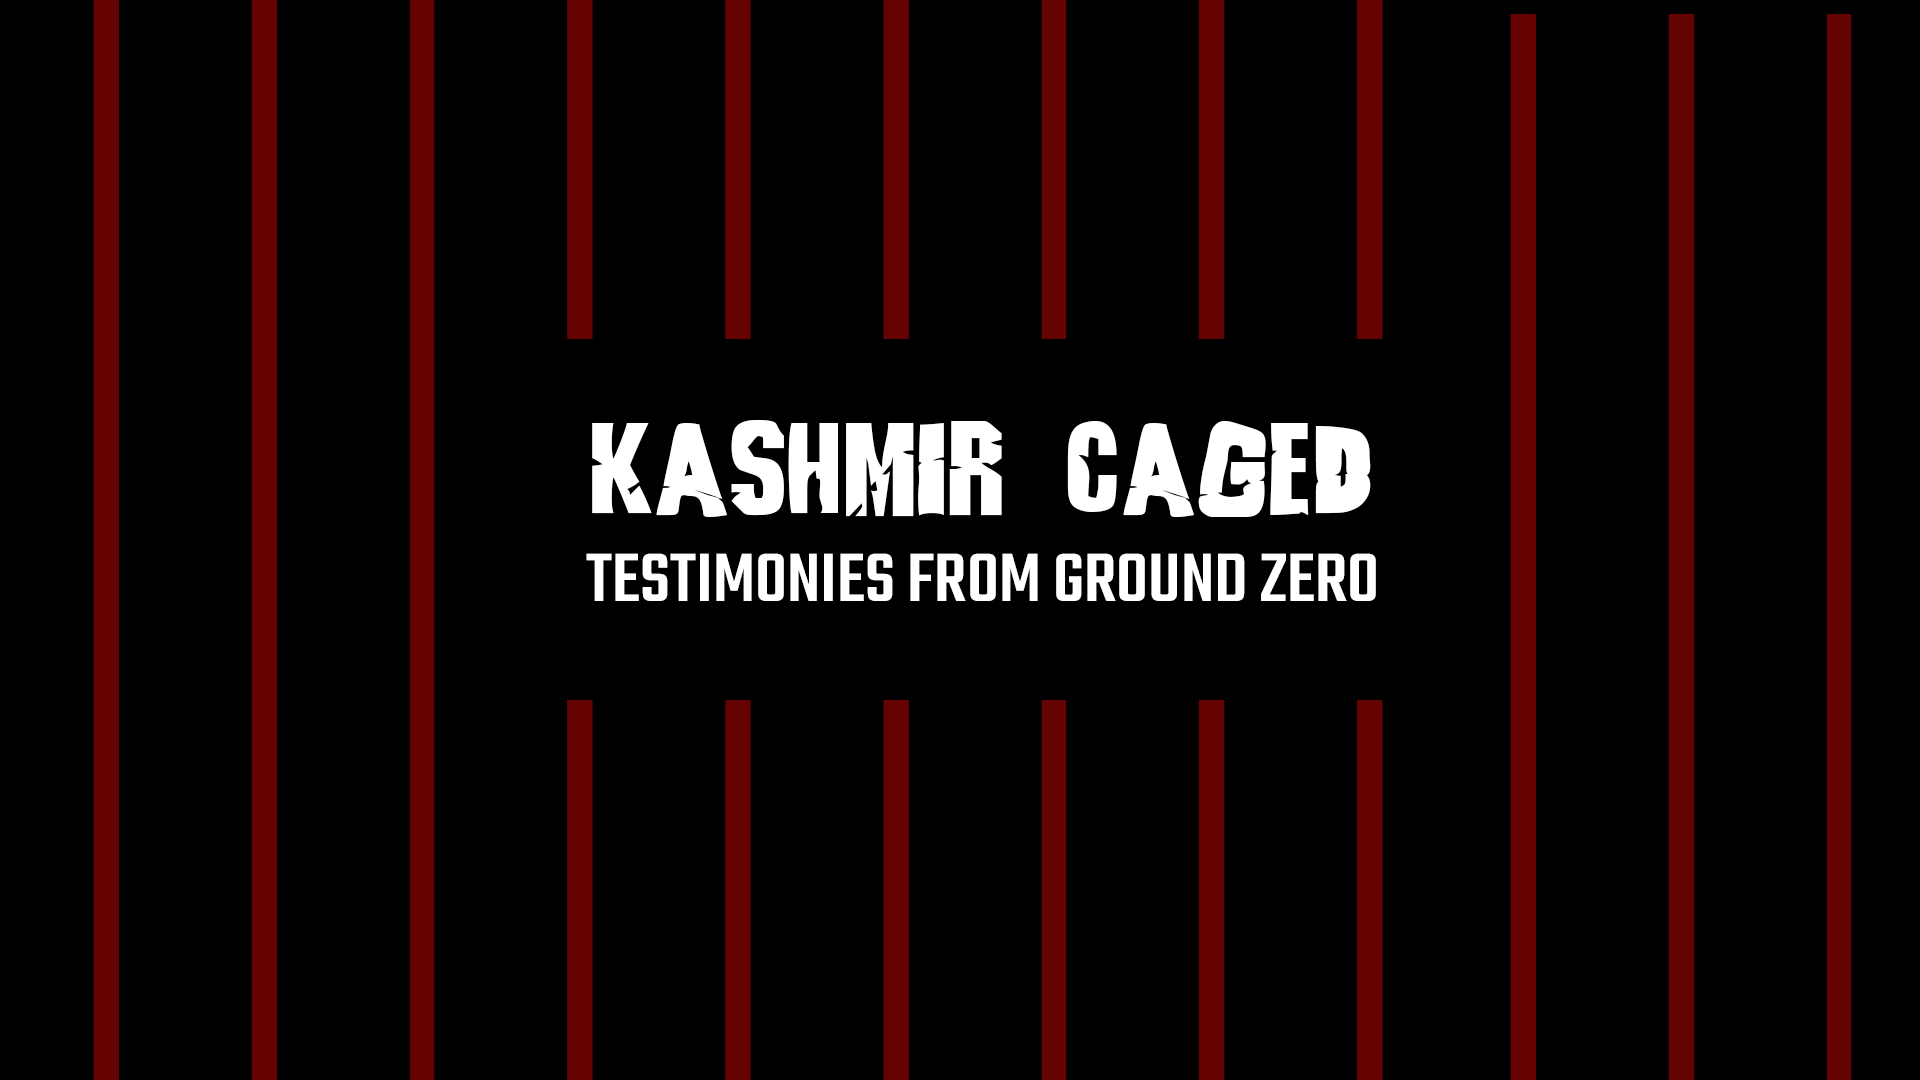 Kashmir Caged_Testimonies from Ground Zero